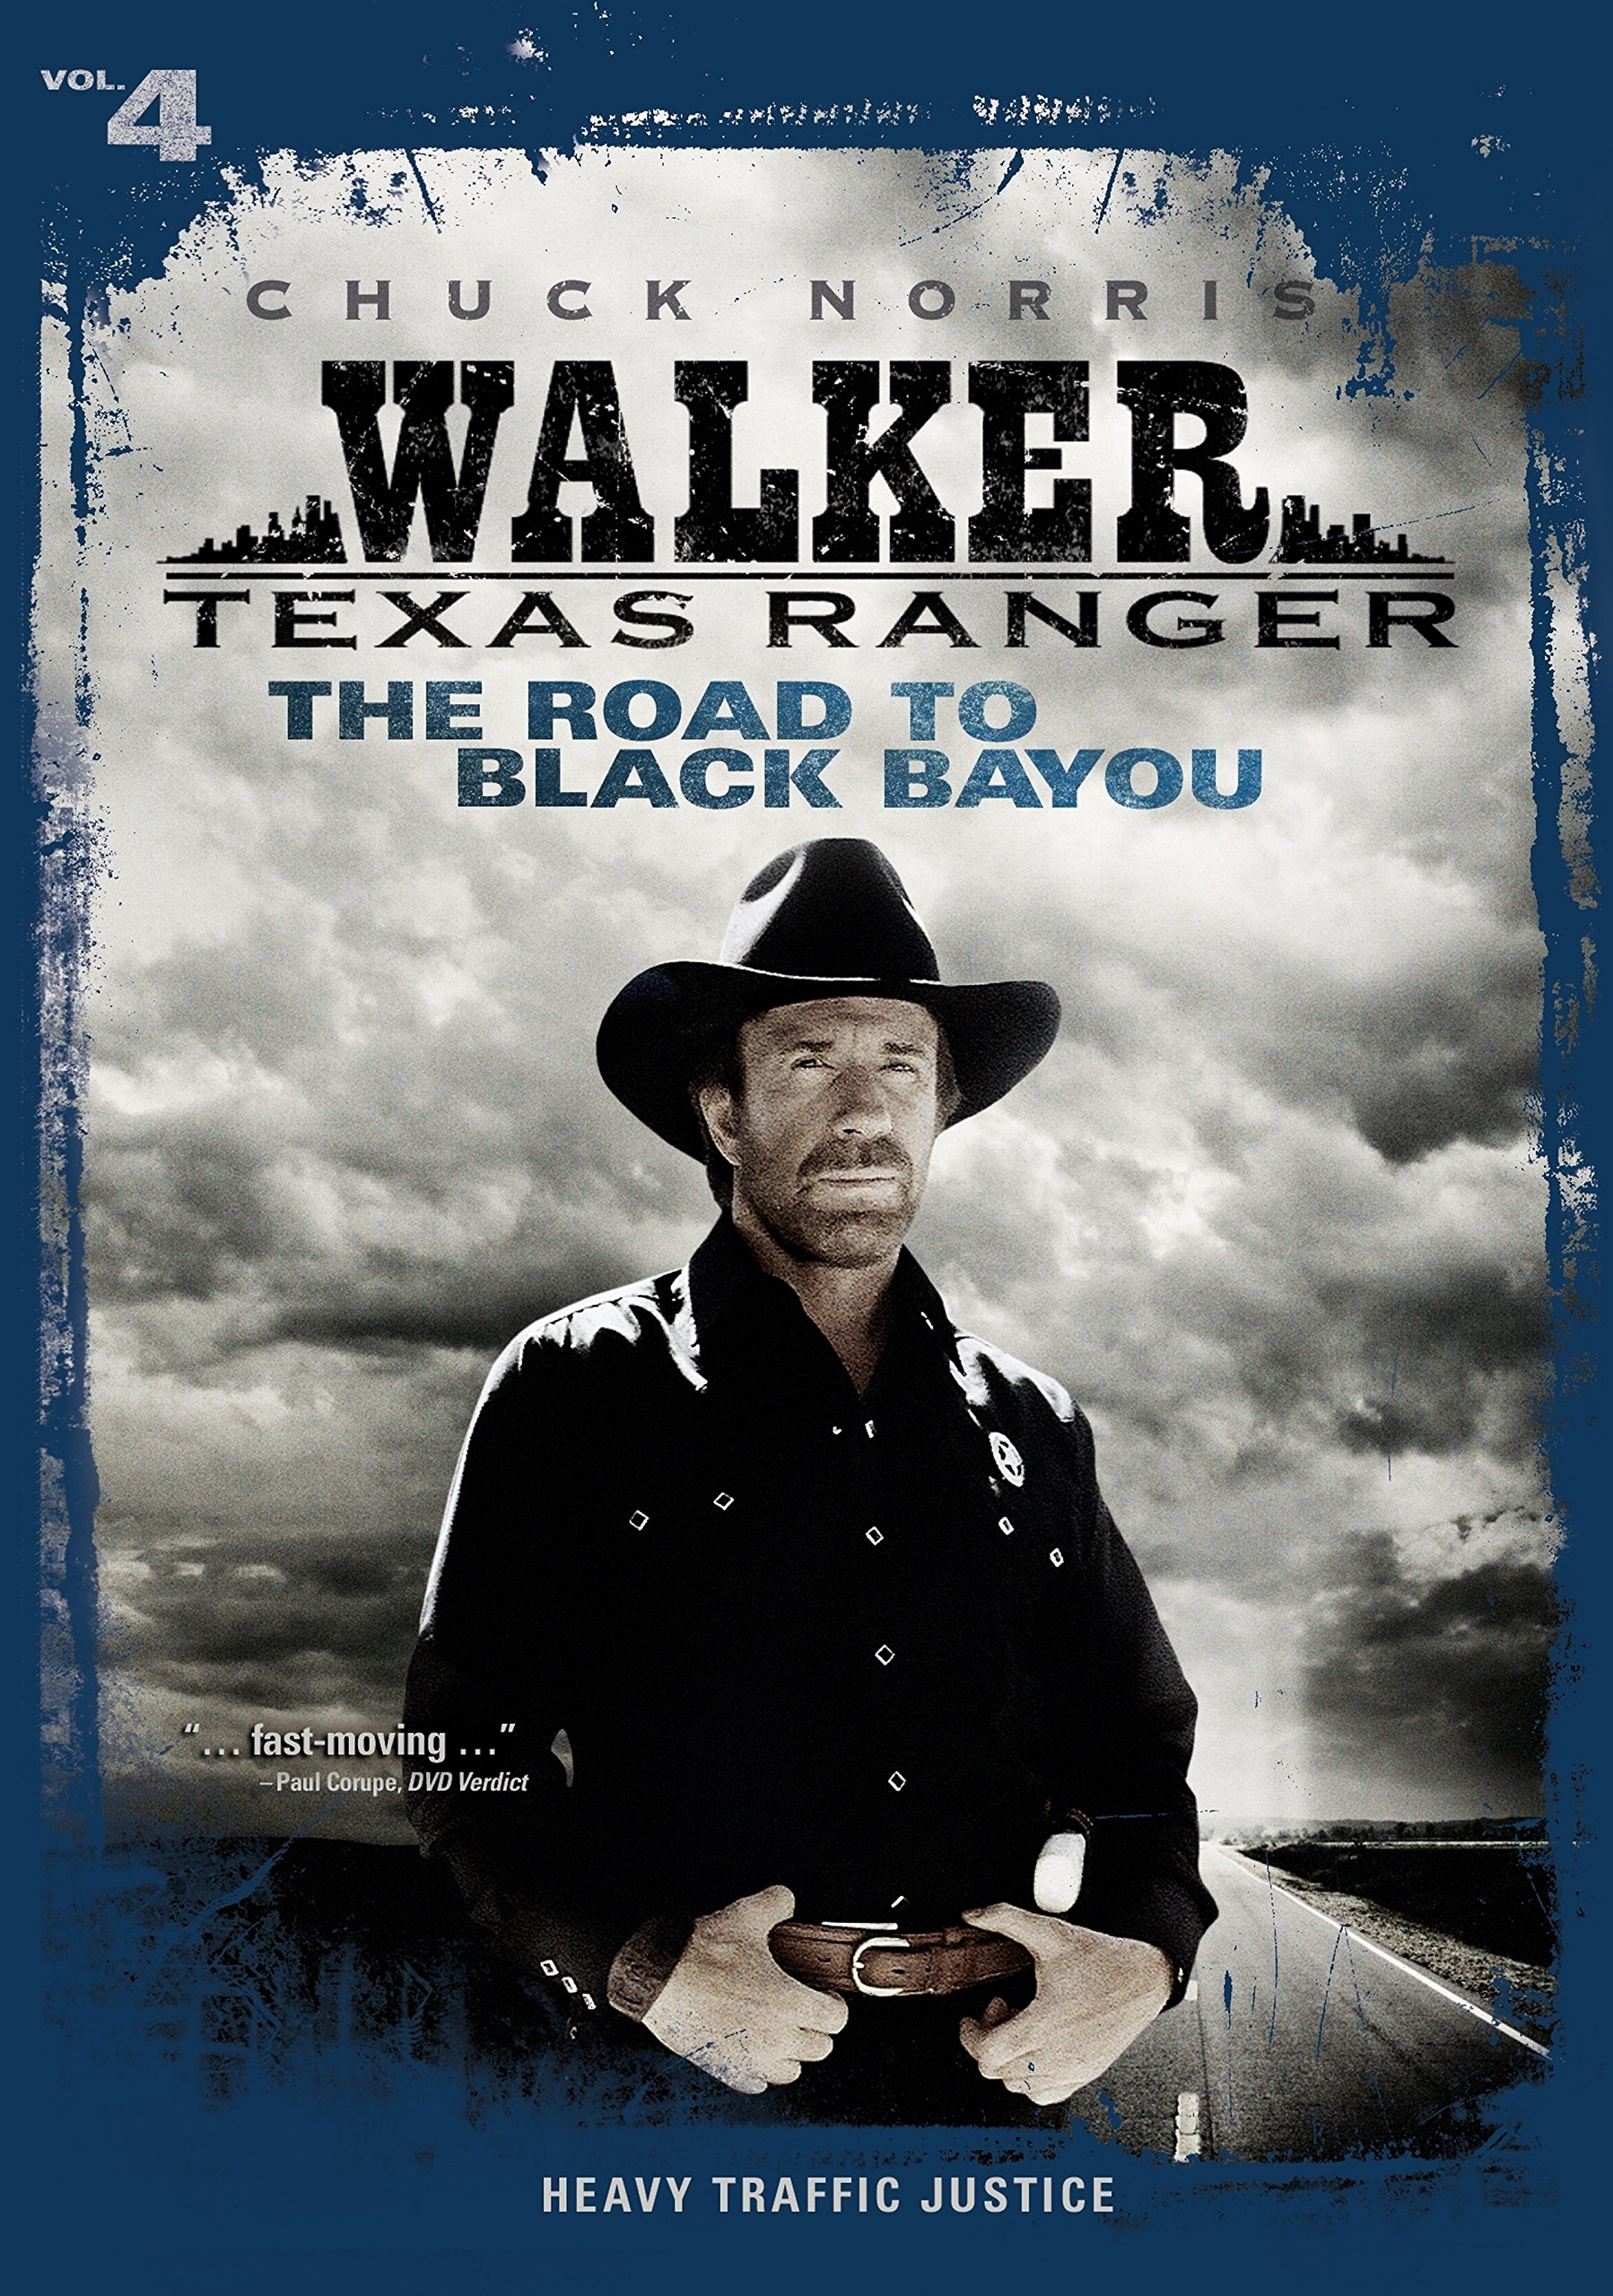 DVD : Walker Texas Ranger: The Road to Black Bayou (Full Frame, , Sensormatic)